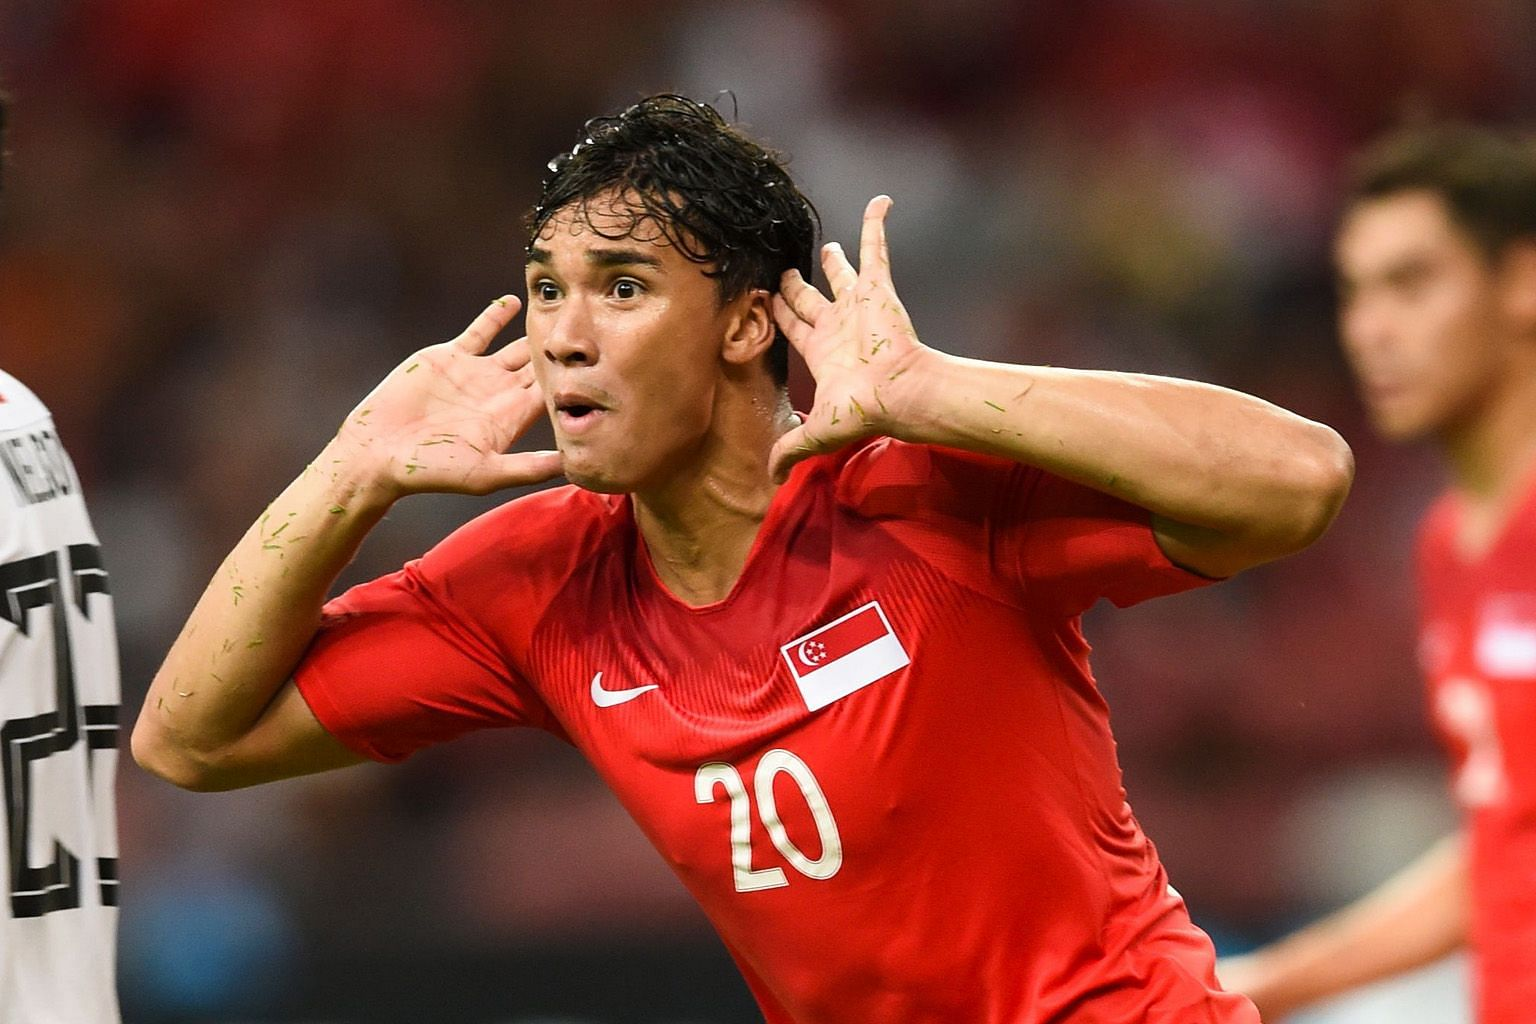 Ikhsan Fandi celebrating a highlight-reel goal, a bicycle kick to put Singapore 4-1 up against Timor-Leste on Nov 21. The Lions won 6-1 in the AFF Suzuki Cup group game at the National Stadium but eventually failed to make the semi-finals.